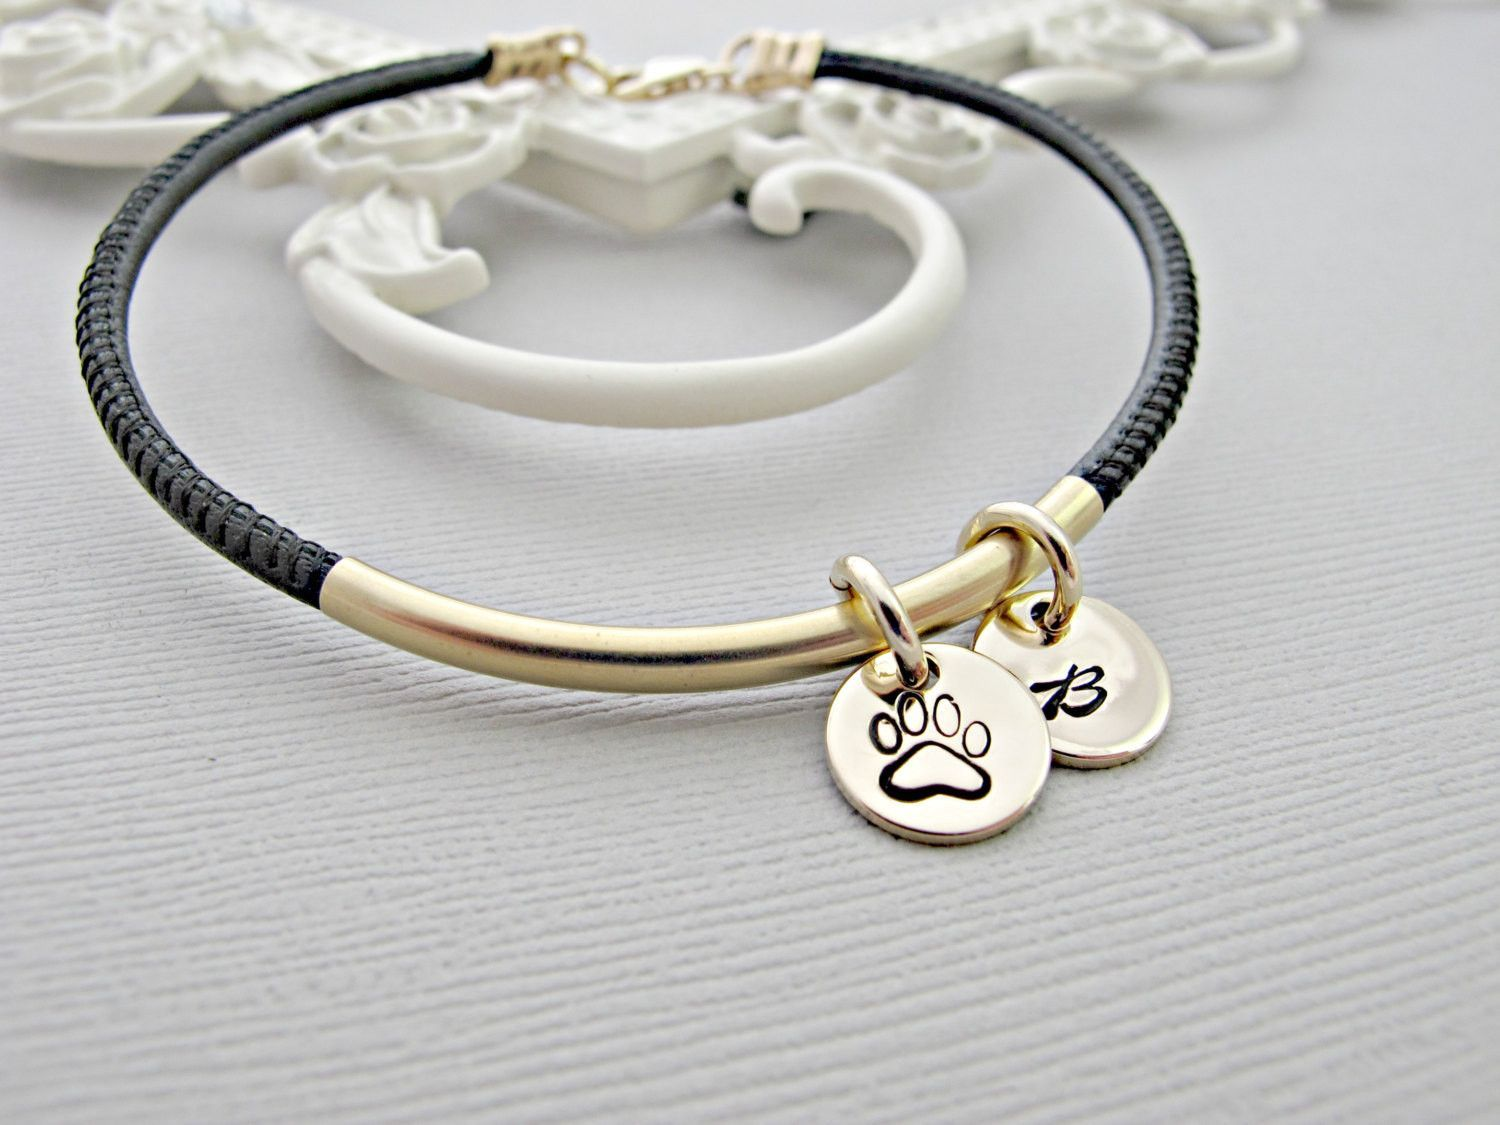 Memorial Bracelet Pet Remembrance Jewelry Loss Of Dog Personalized Paw Print